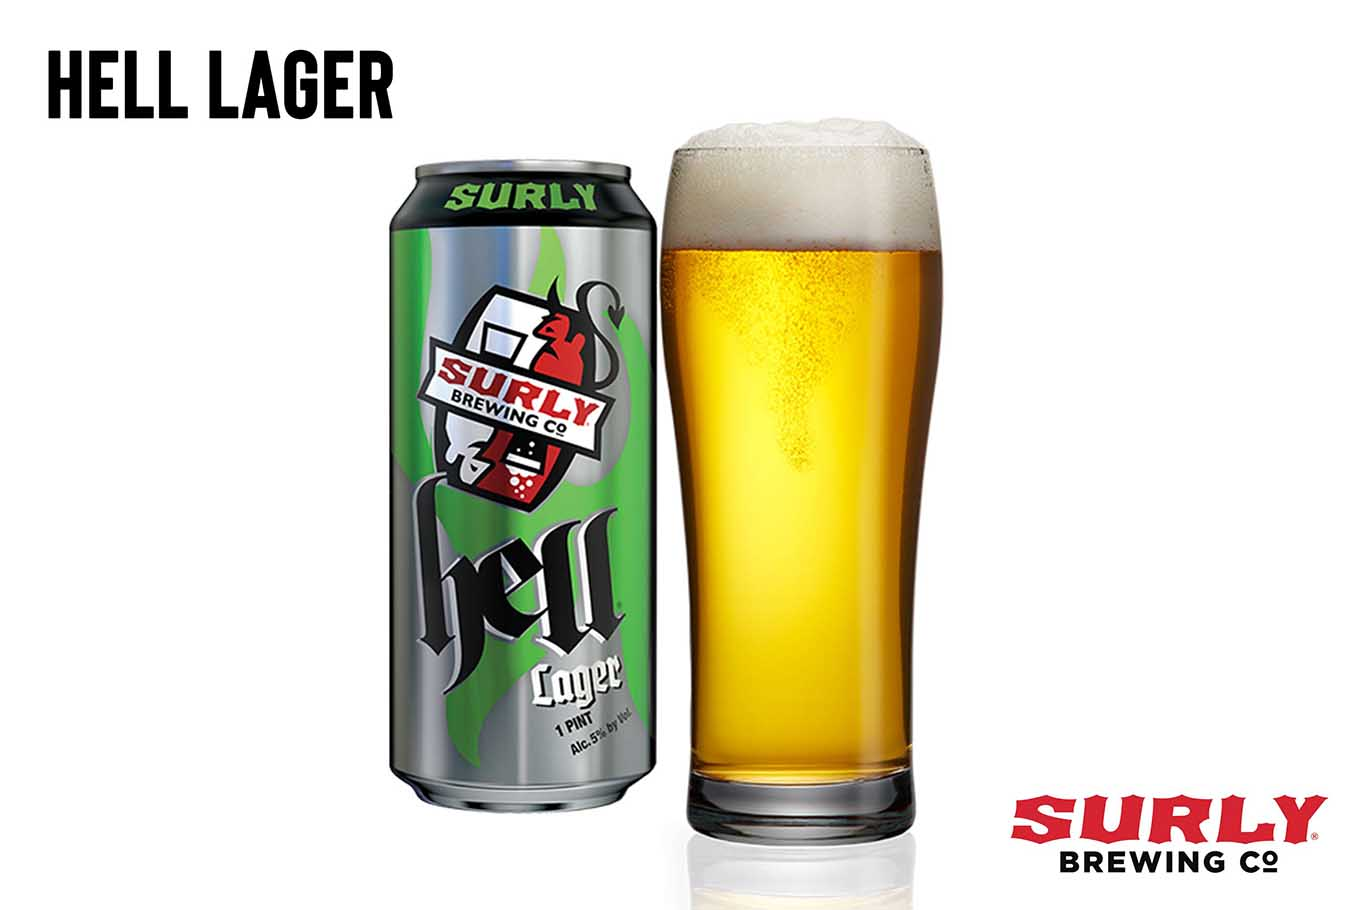 Hell Lager